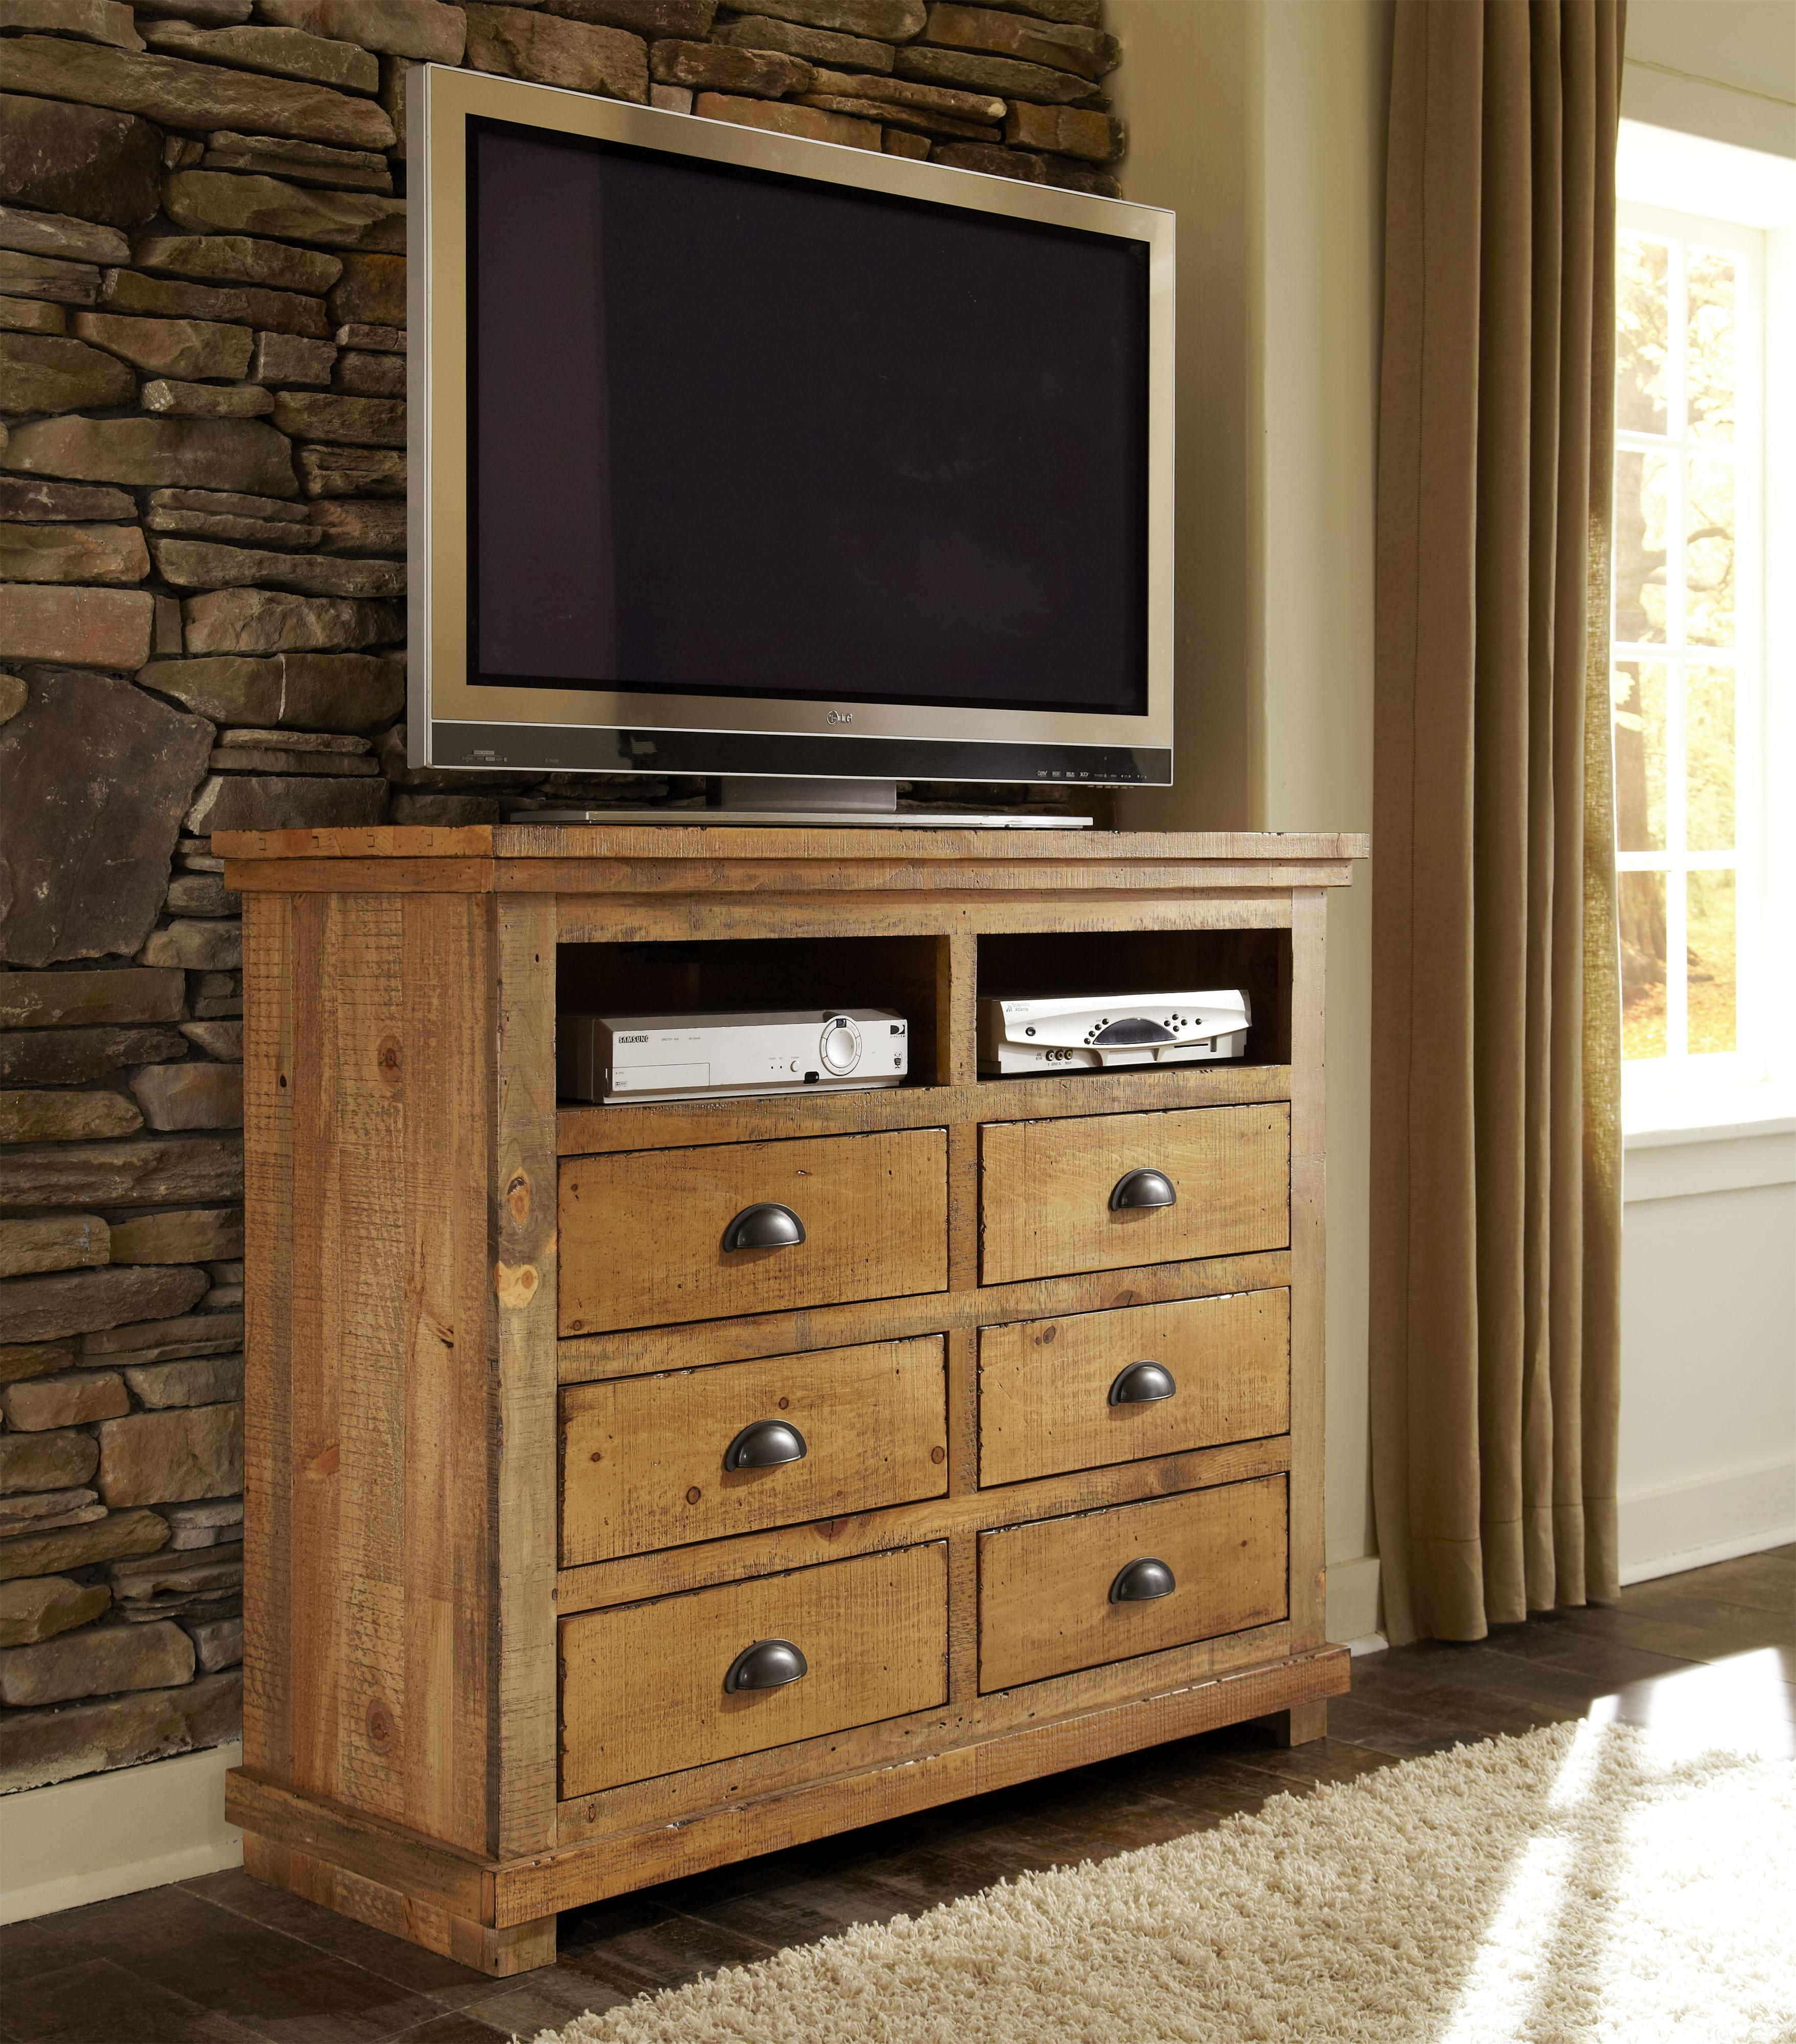 willow distressed pine media chest by progressive furniture - Progressive Furniture